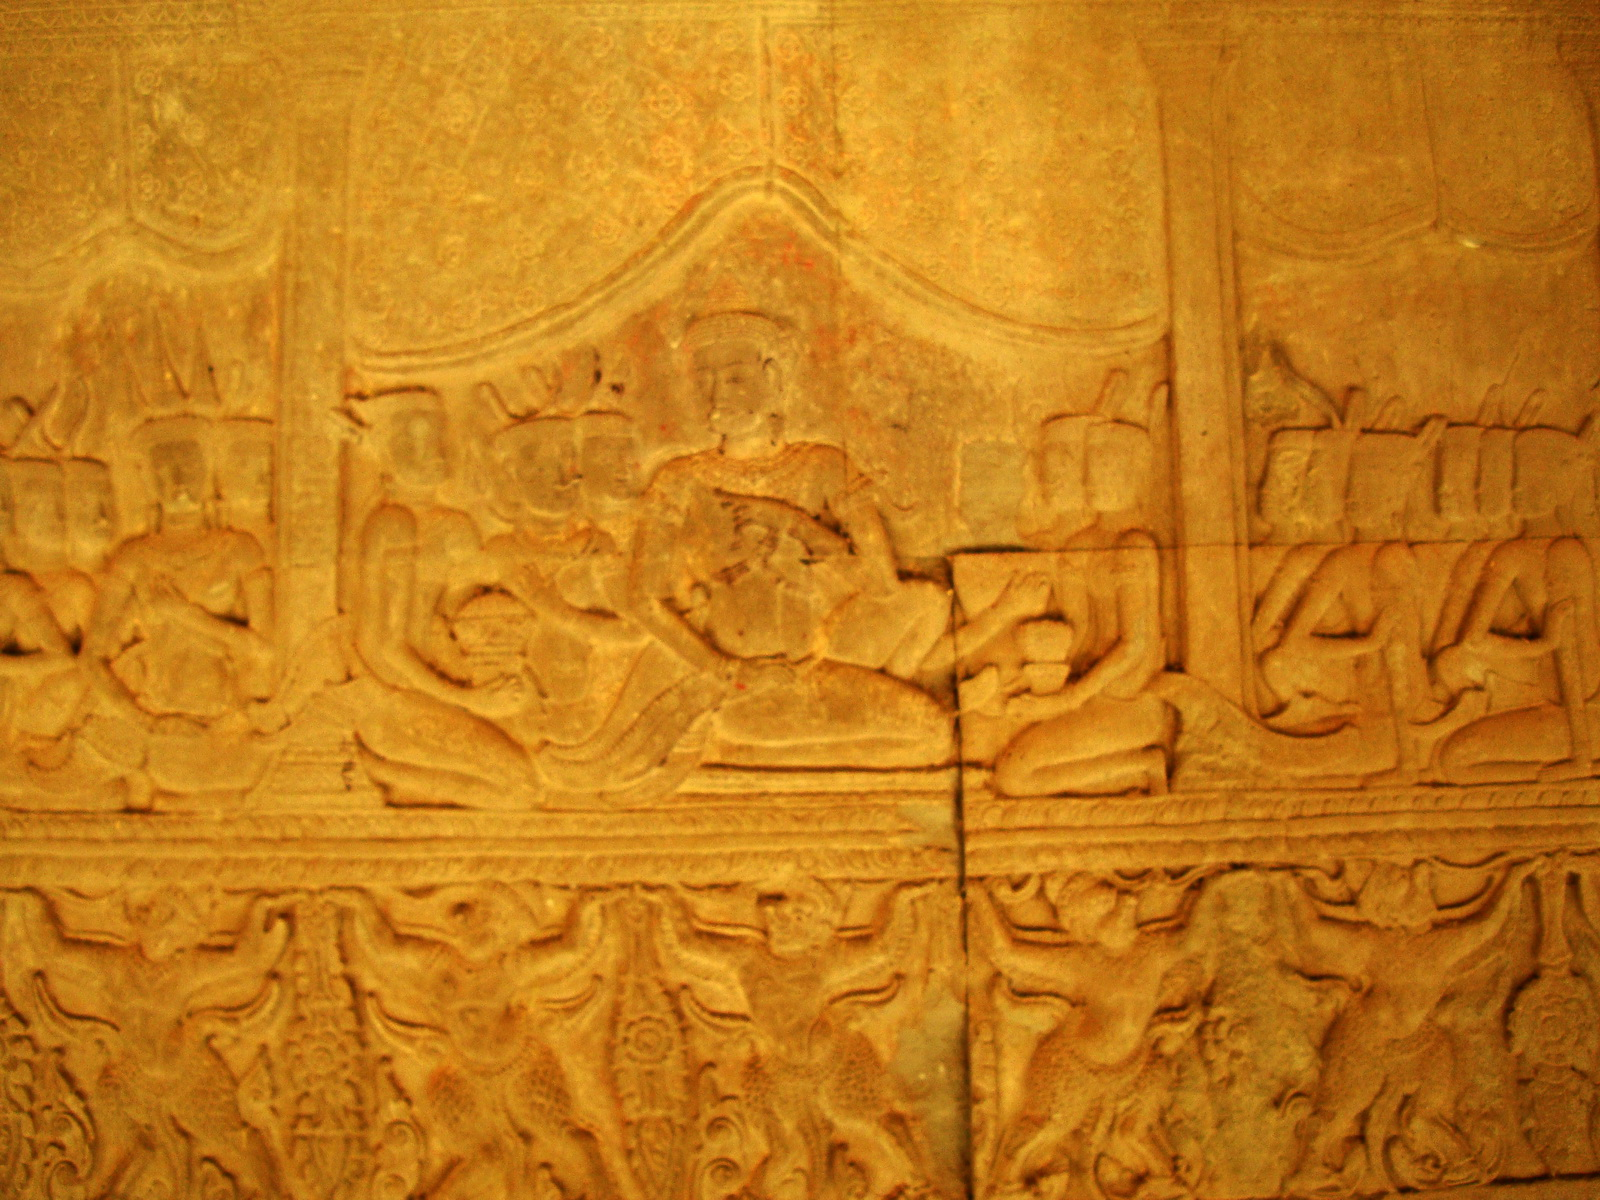 Angkor Wat Bas relief S Gallery E Wing Heavens and Hells 65